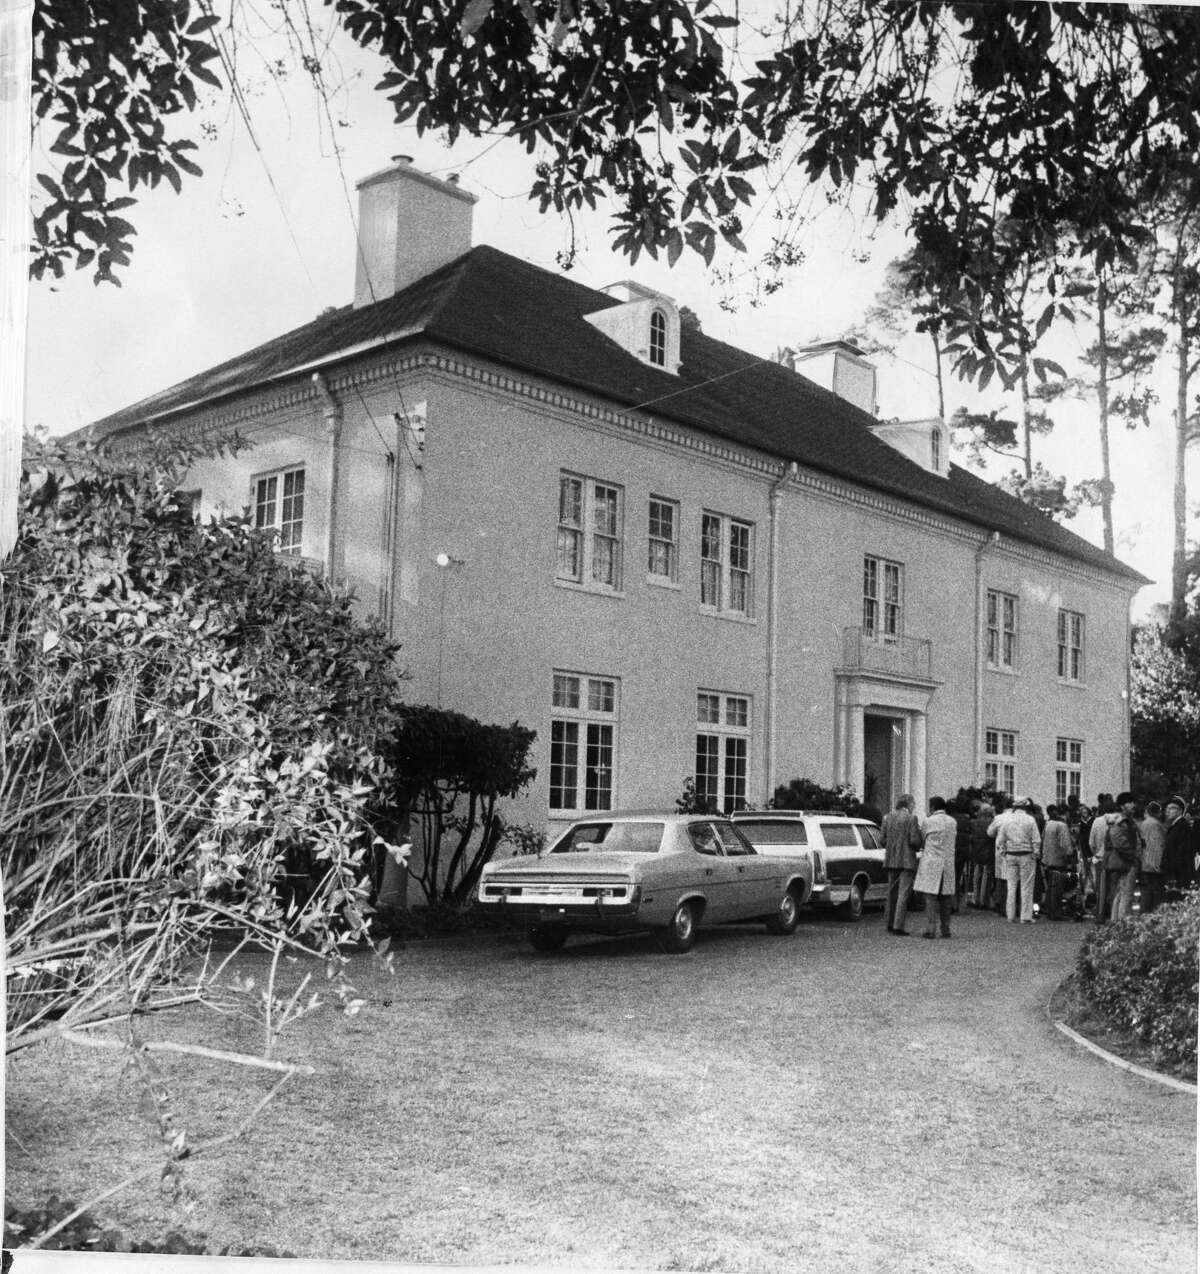 The mansion, surrounded by press, during the kidnapping in 1974.